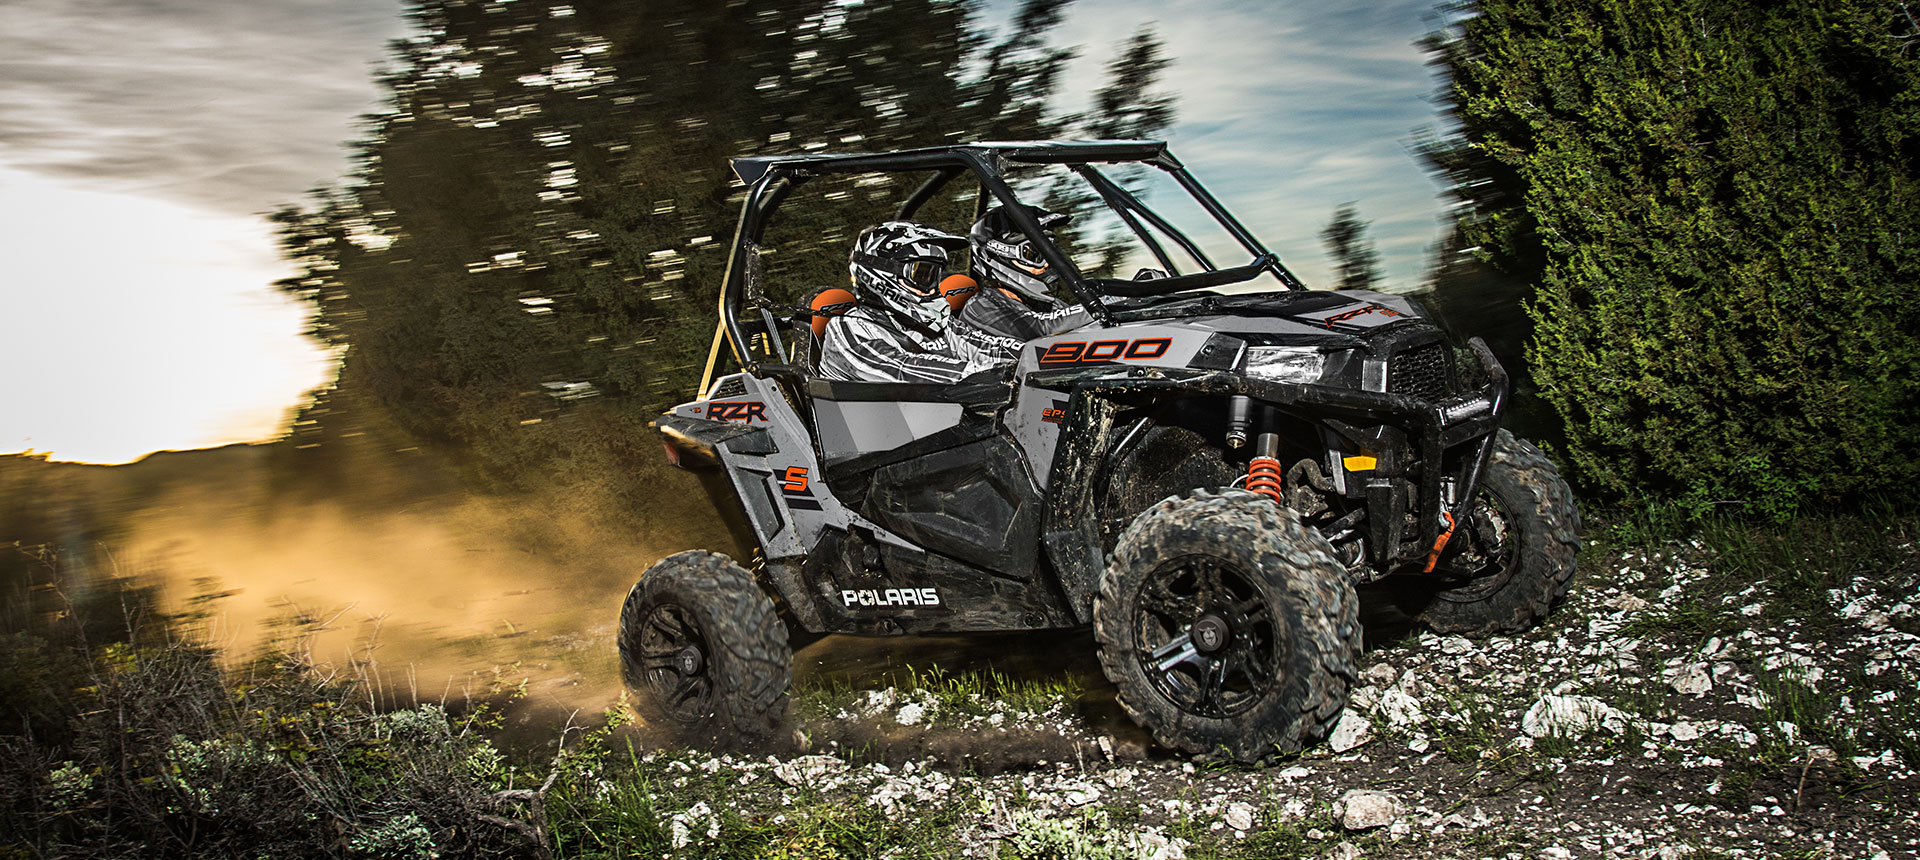 2019 Polaris RZR S 900 in Freeport, Florida